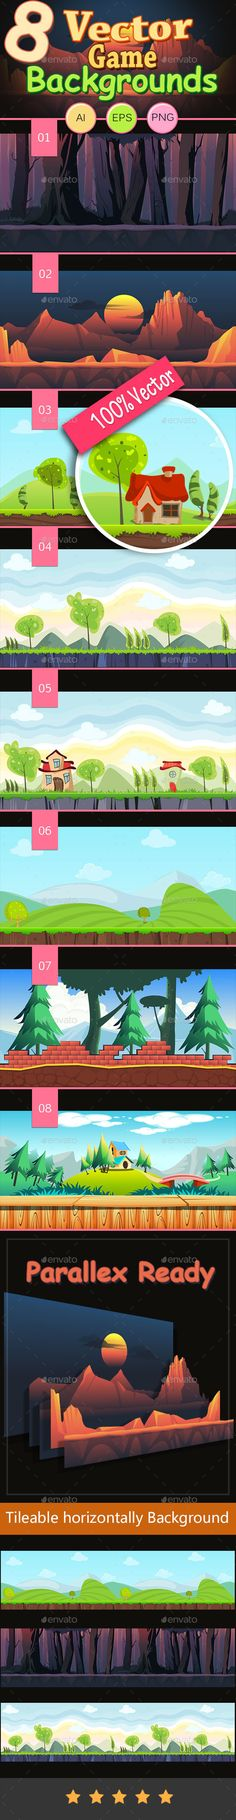 8 Vector Game Backgrounds